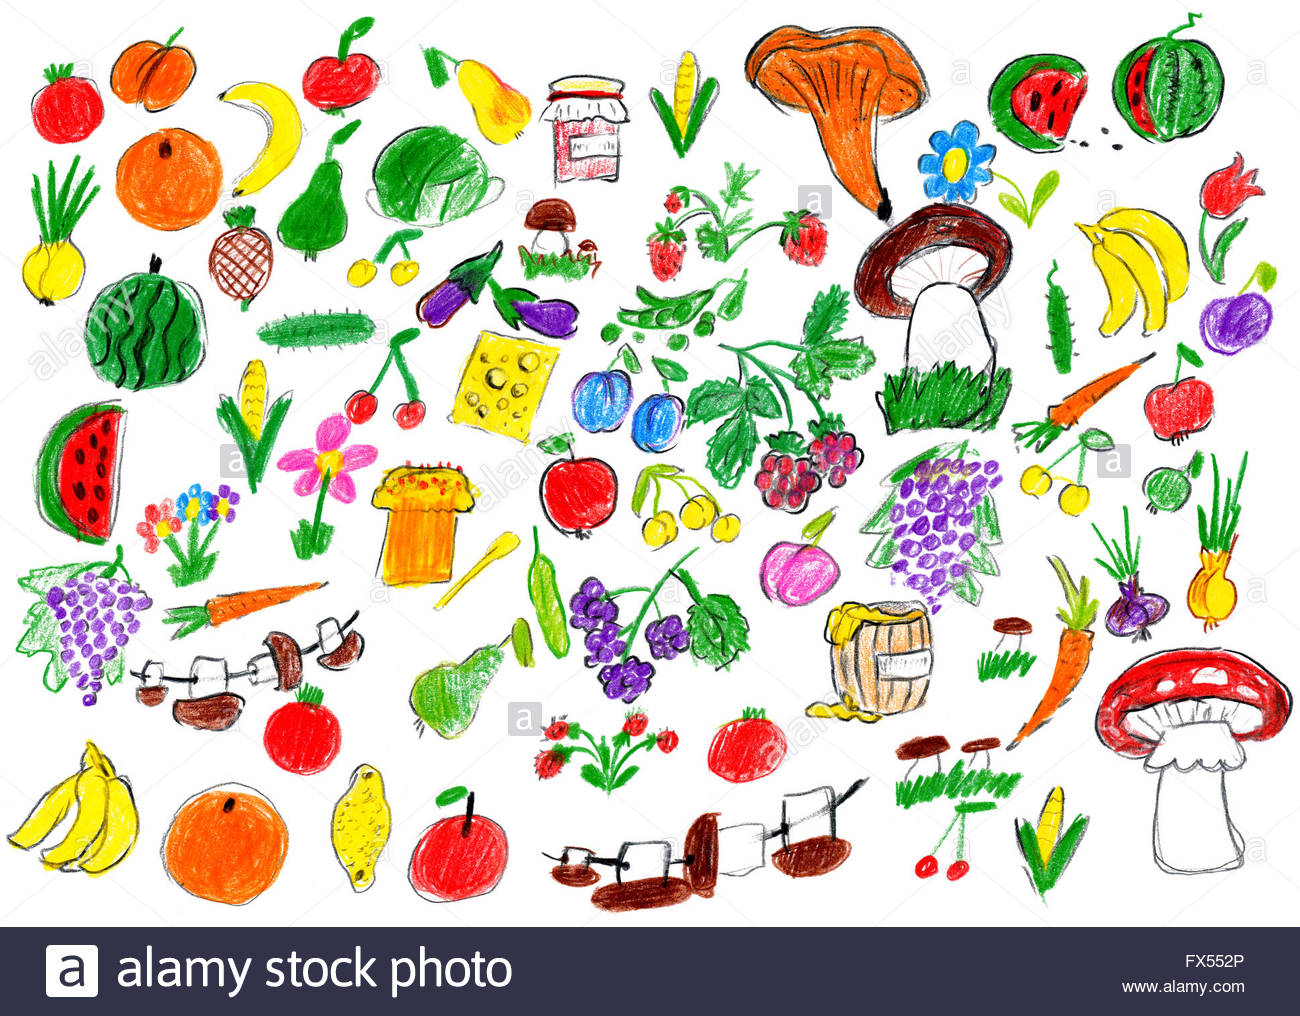 1300x1016 Cartoon Food Collection, Fruit And Vegetables, Child Drawing